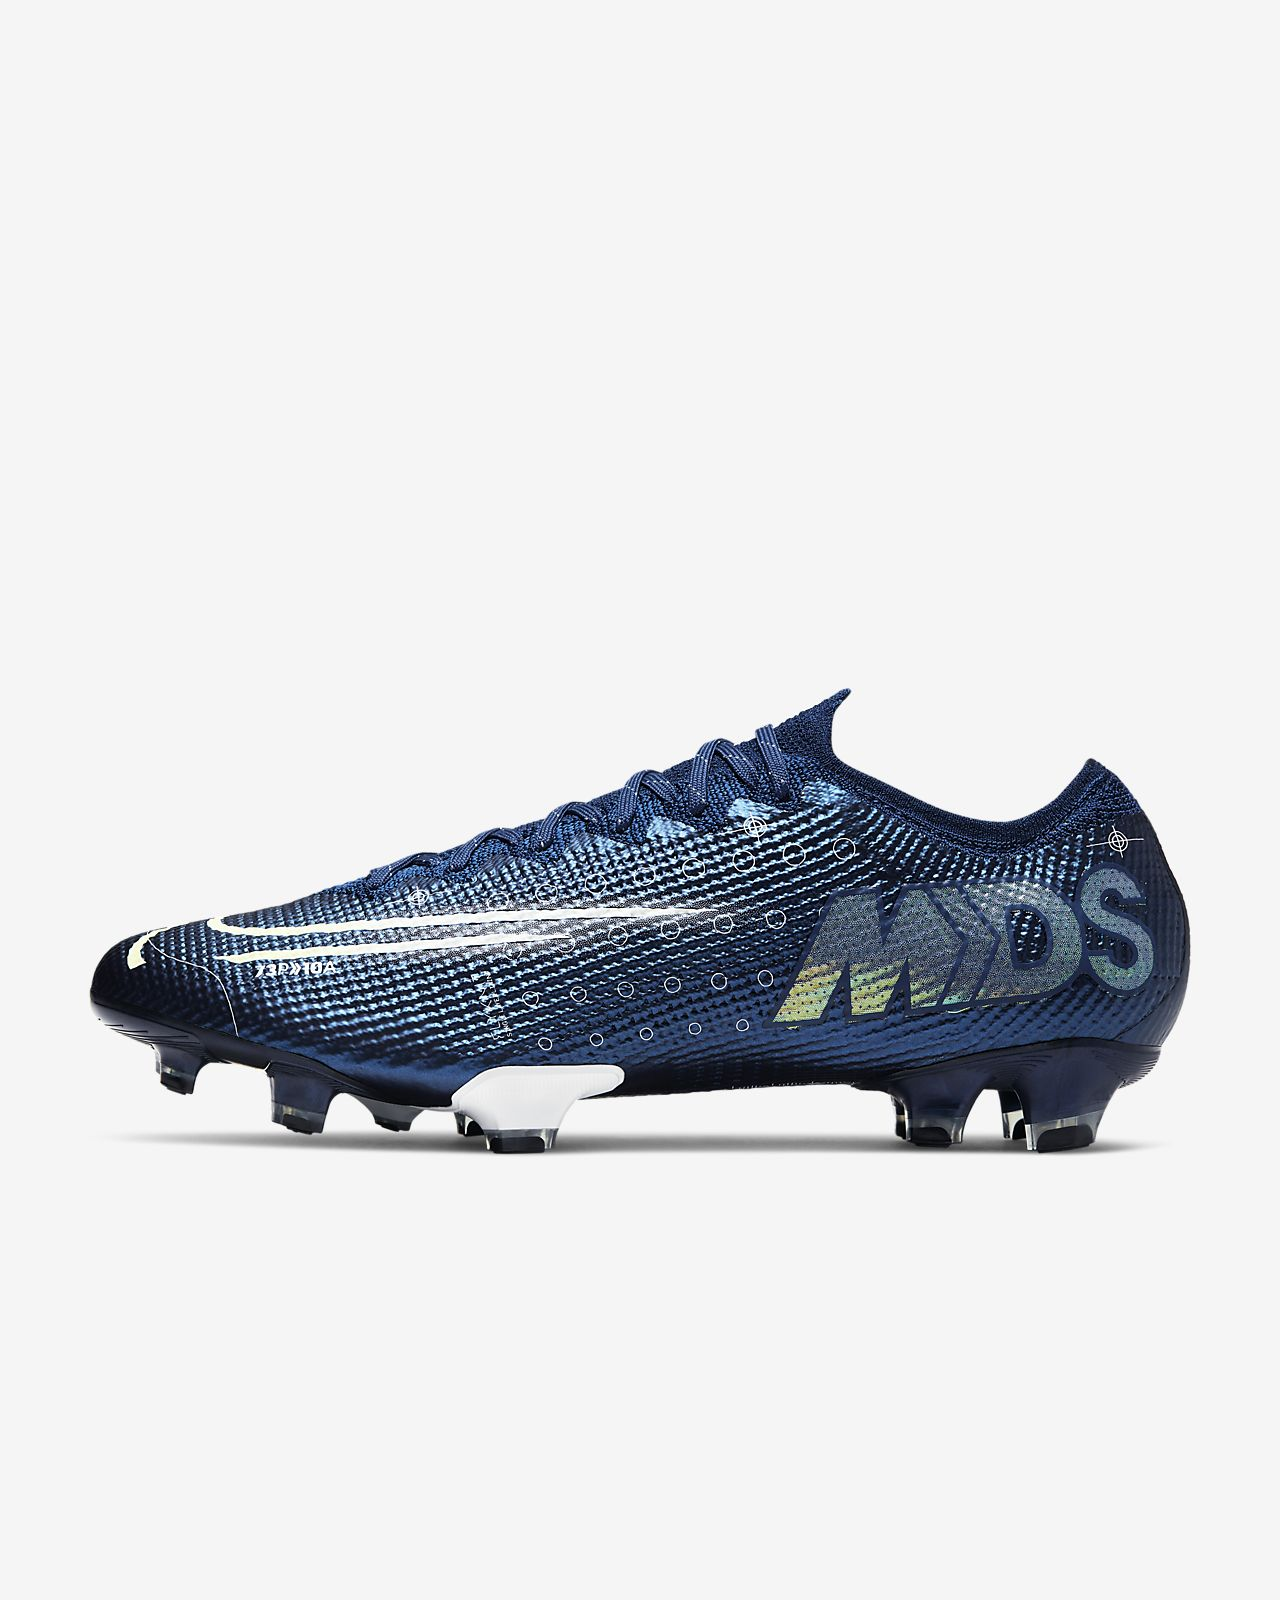 Nike Mercurial Vapor 13 Elite MDS FG Firm Ground Soccer Cleat